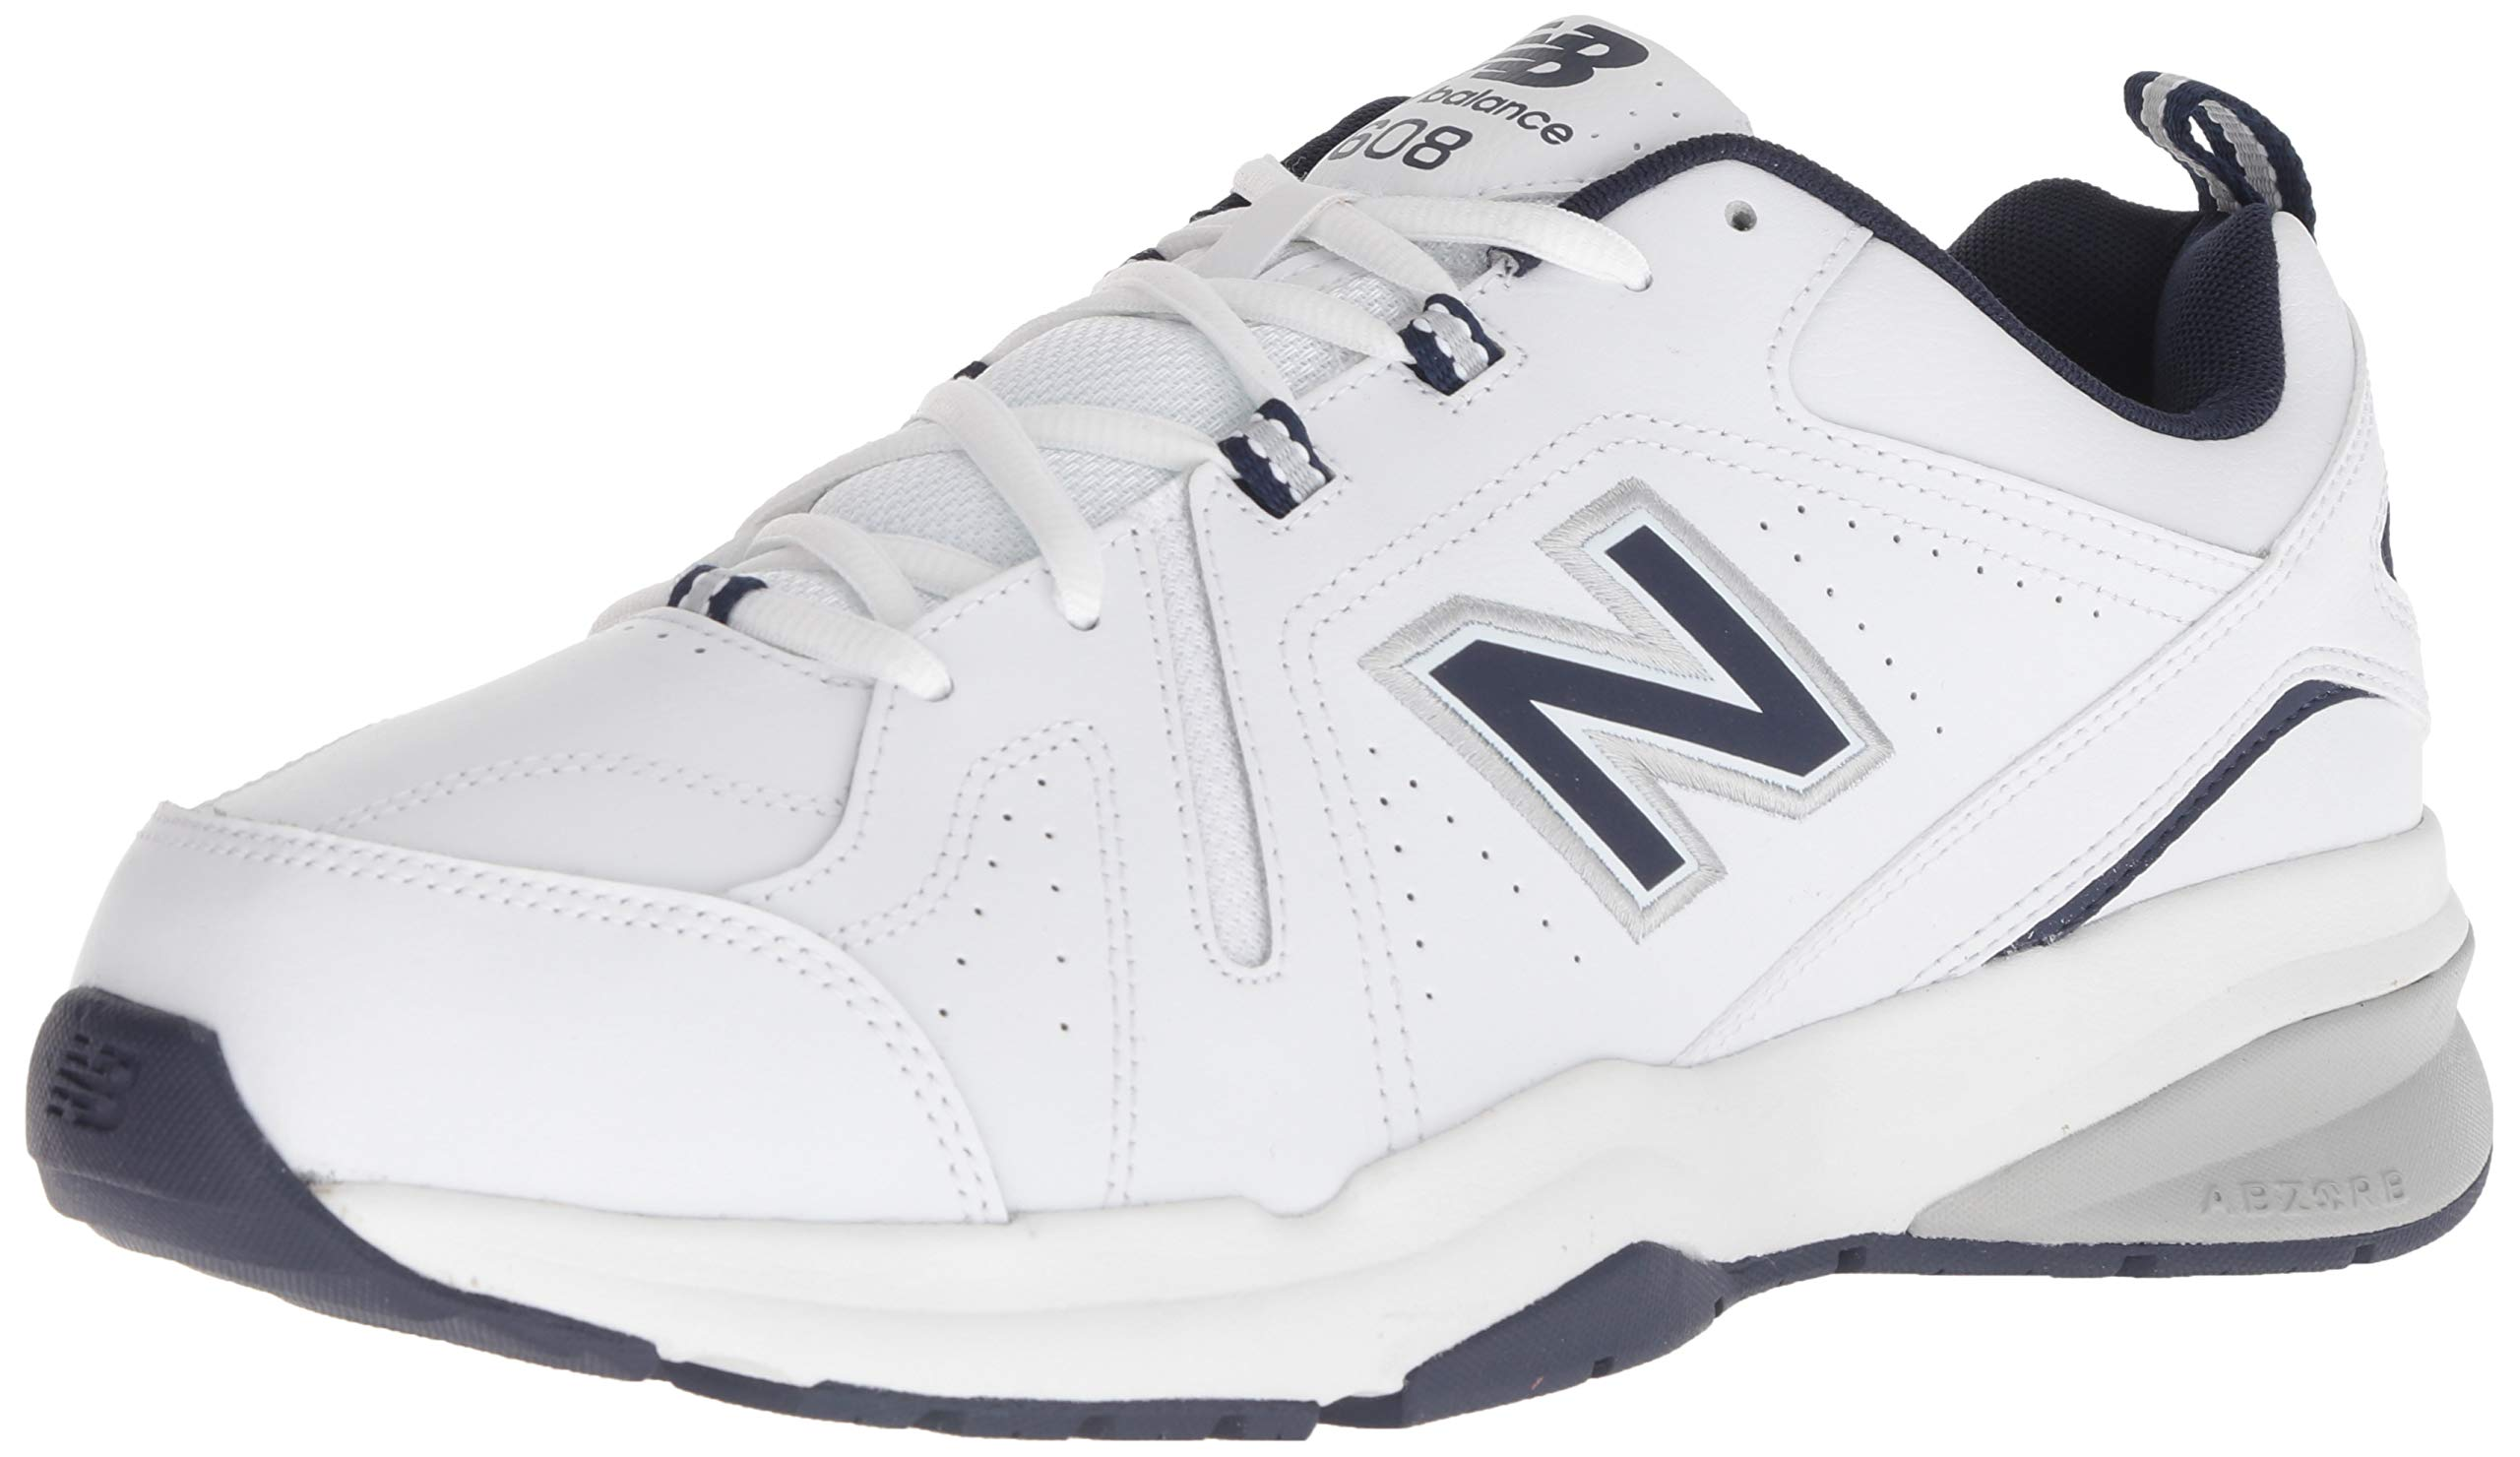 New Balance Men's 608v5 Casual Comfort Cross Trainer, White/Navy, 10.5 2E US